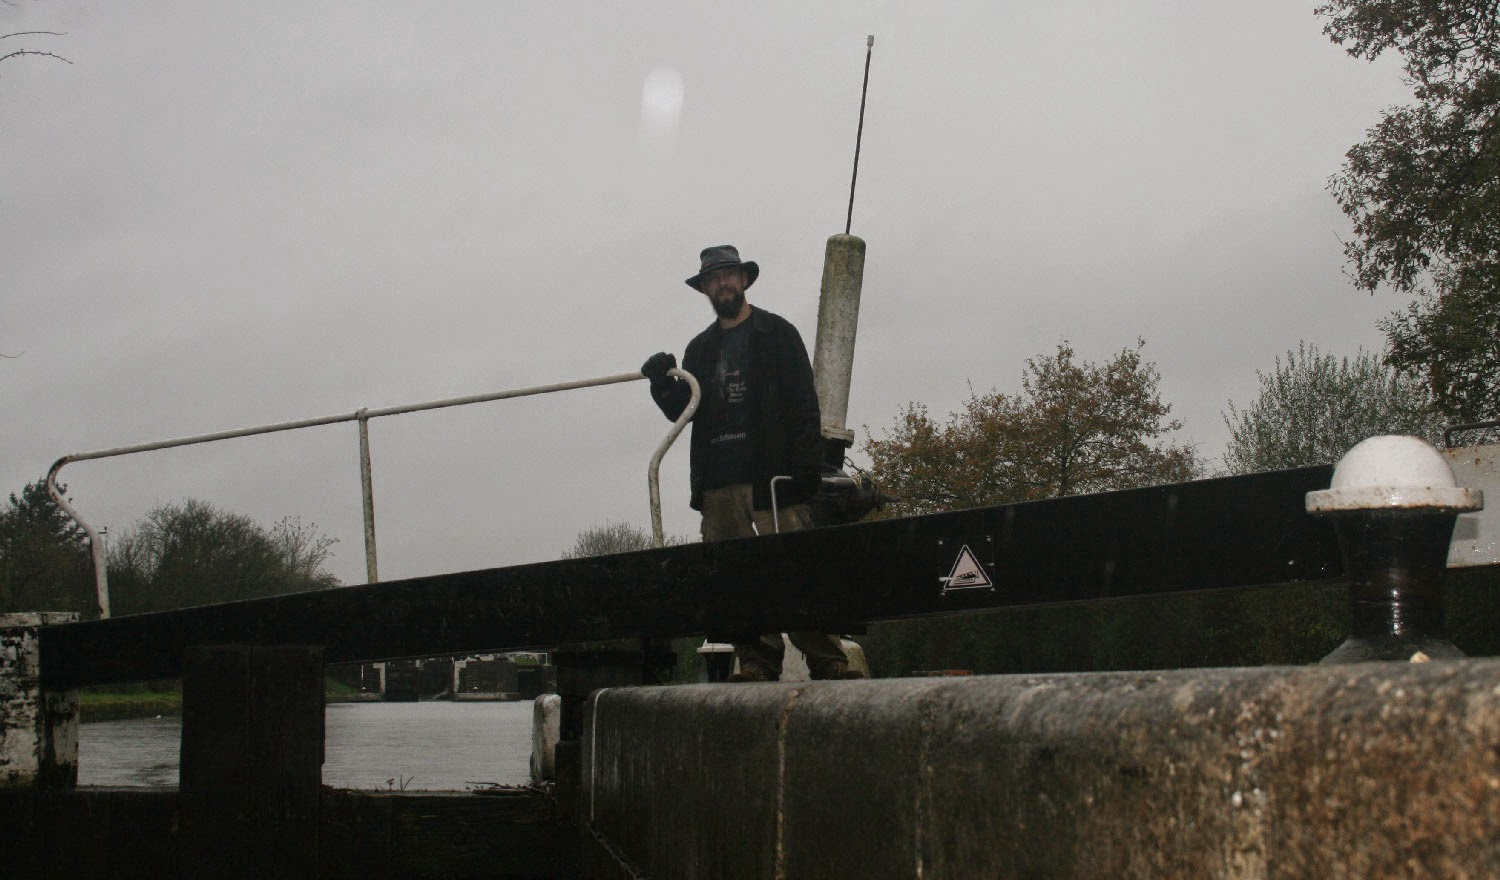 Waiting to open the upstream gate